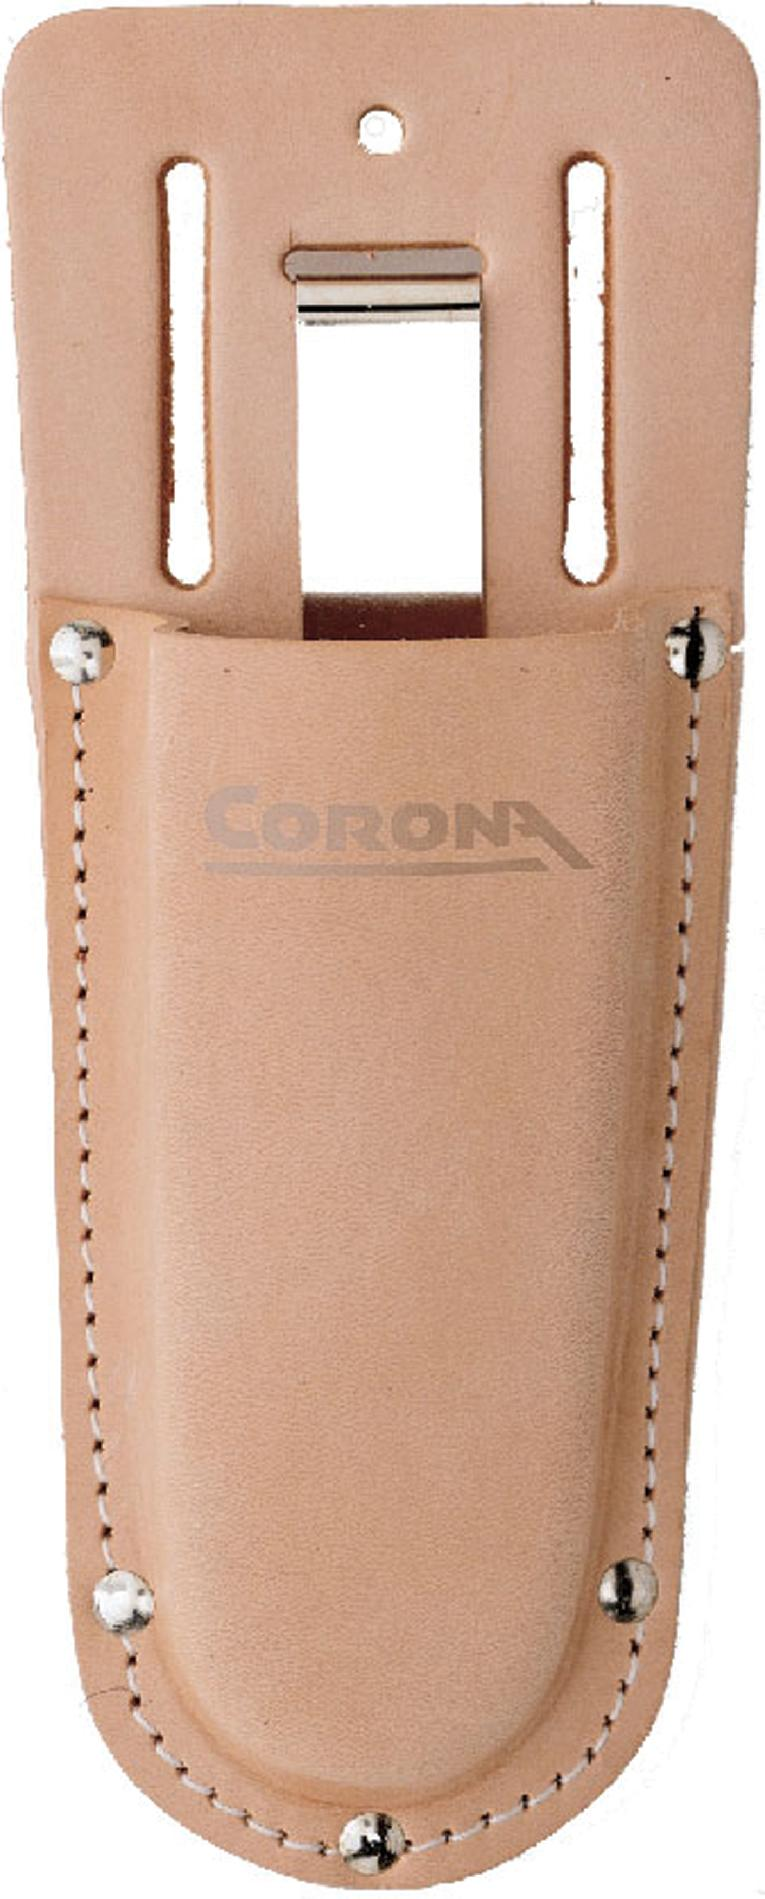 AC7220 Leather Pruner Scabbard Holster